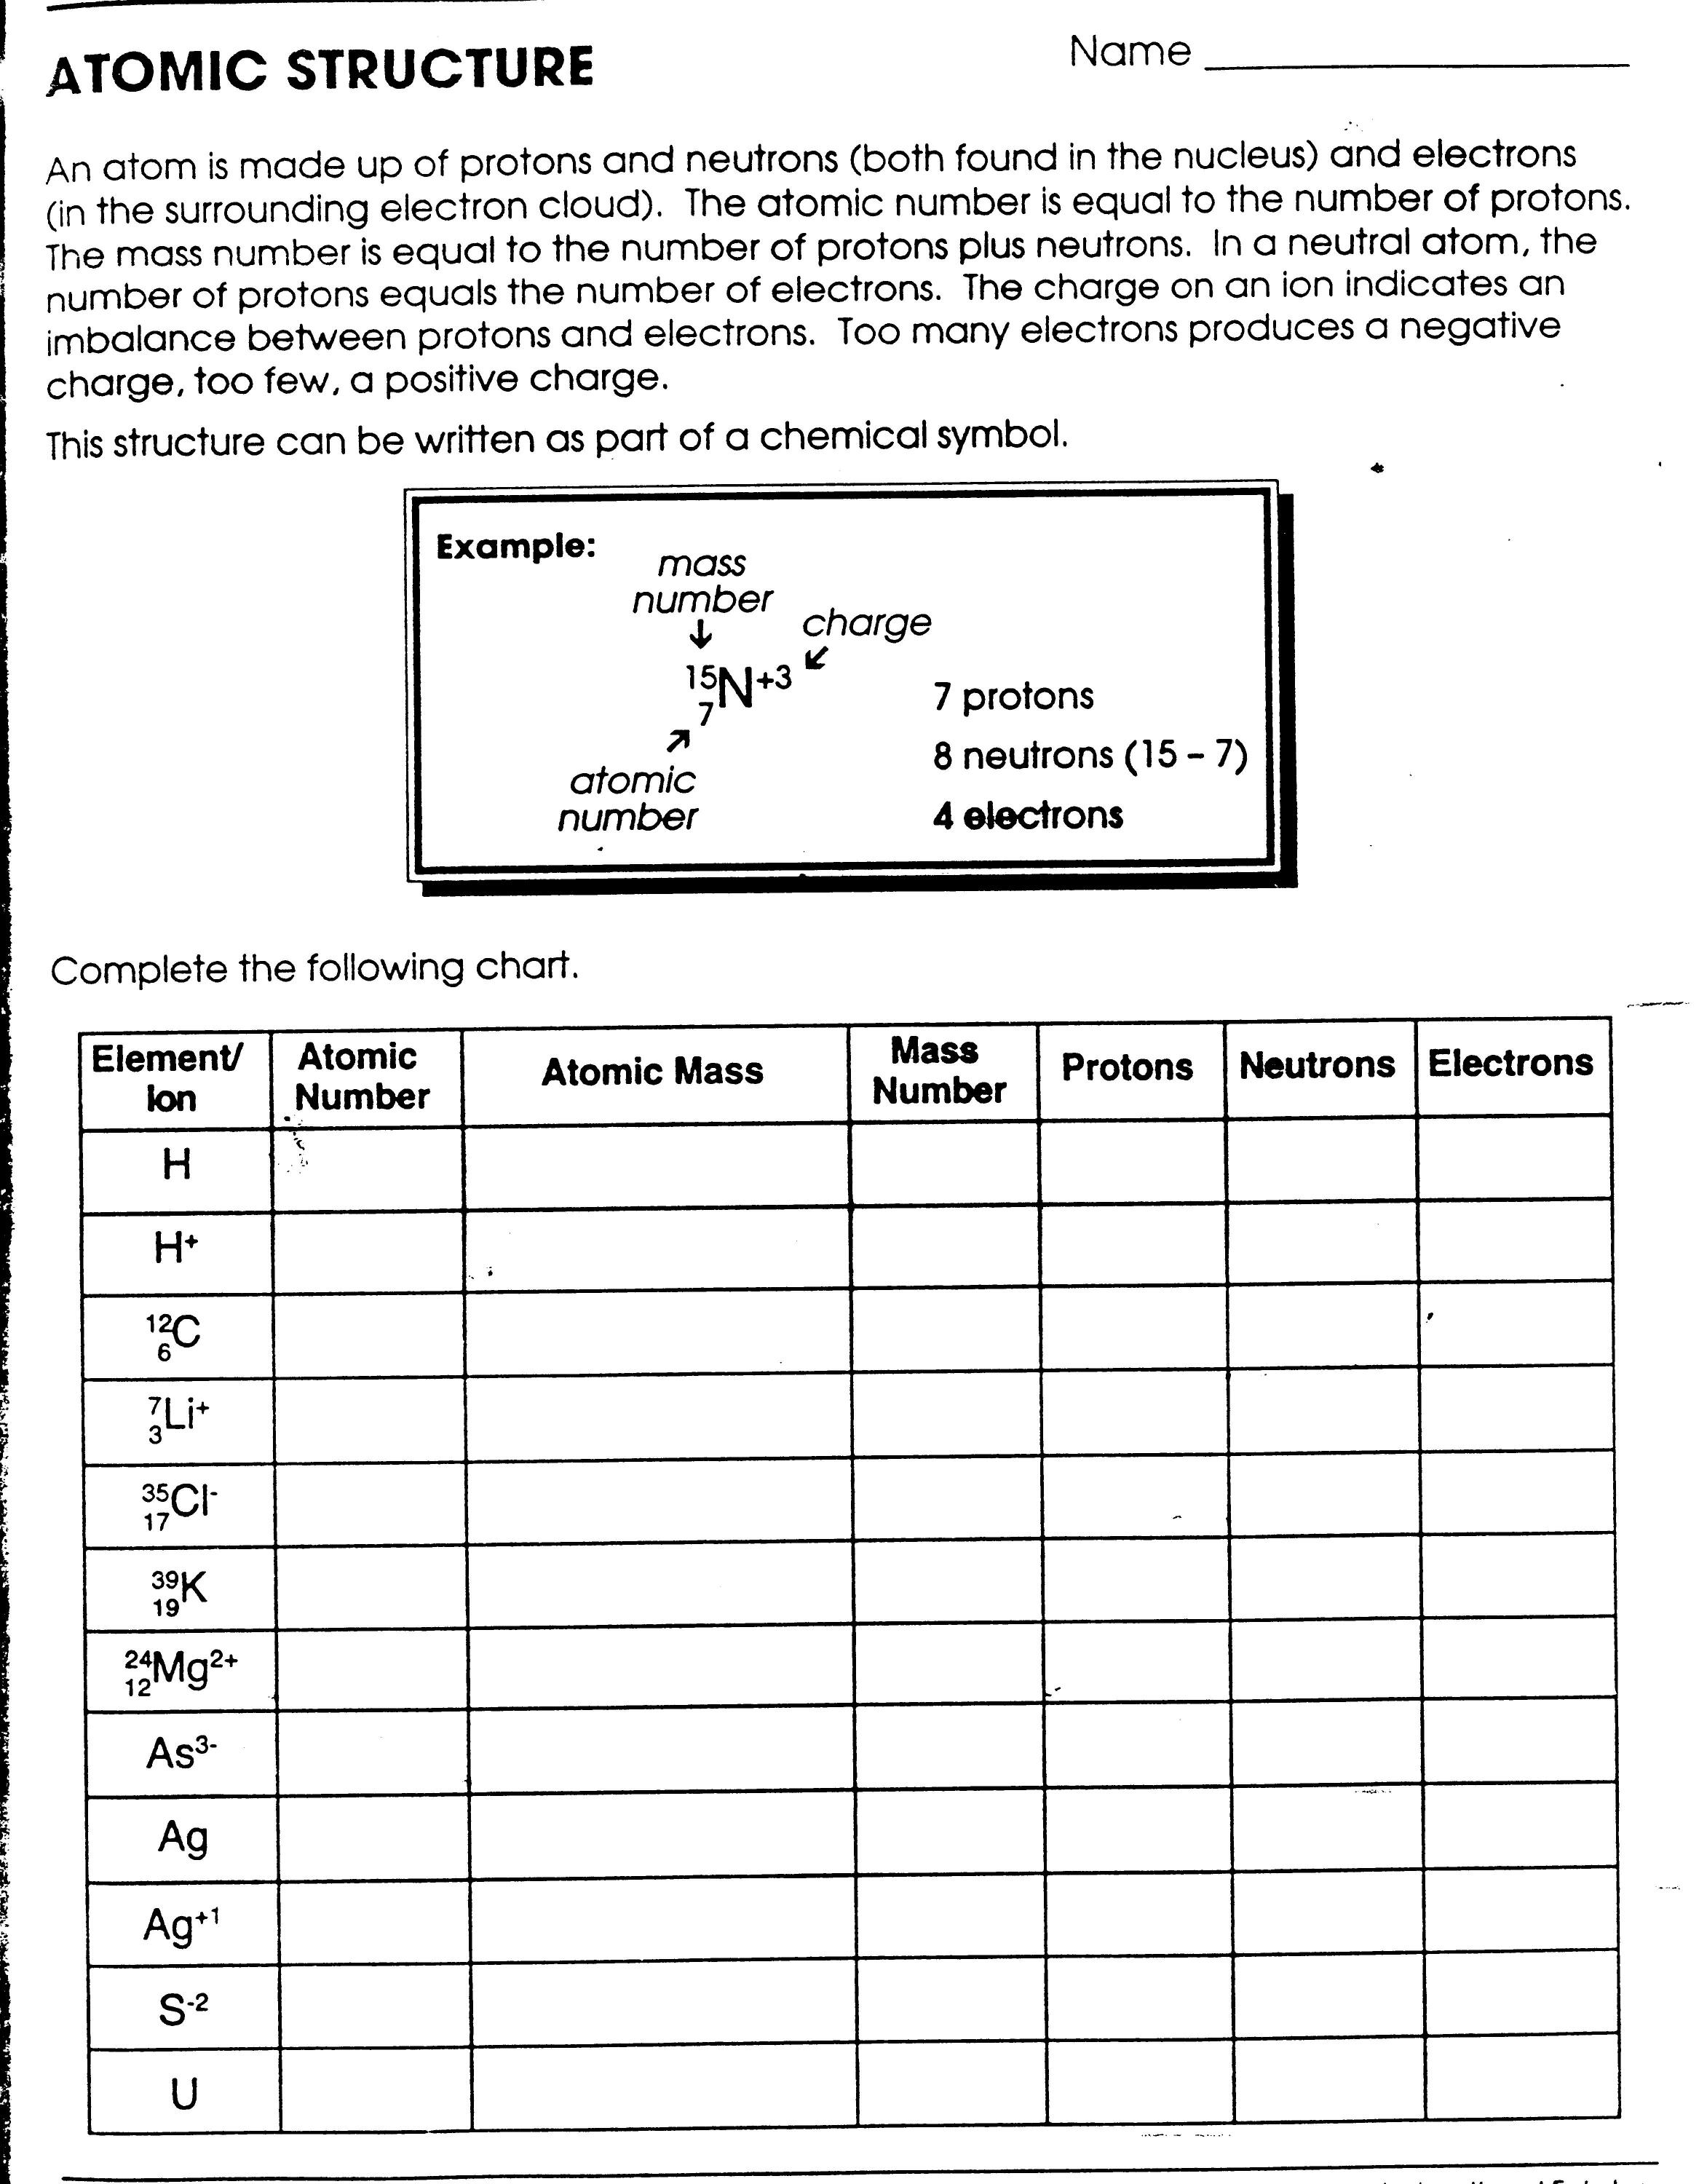 Atomic Structure Worksheet Key